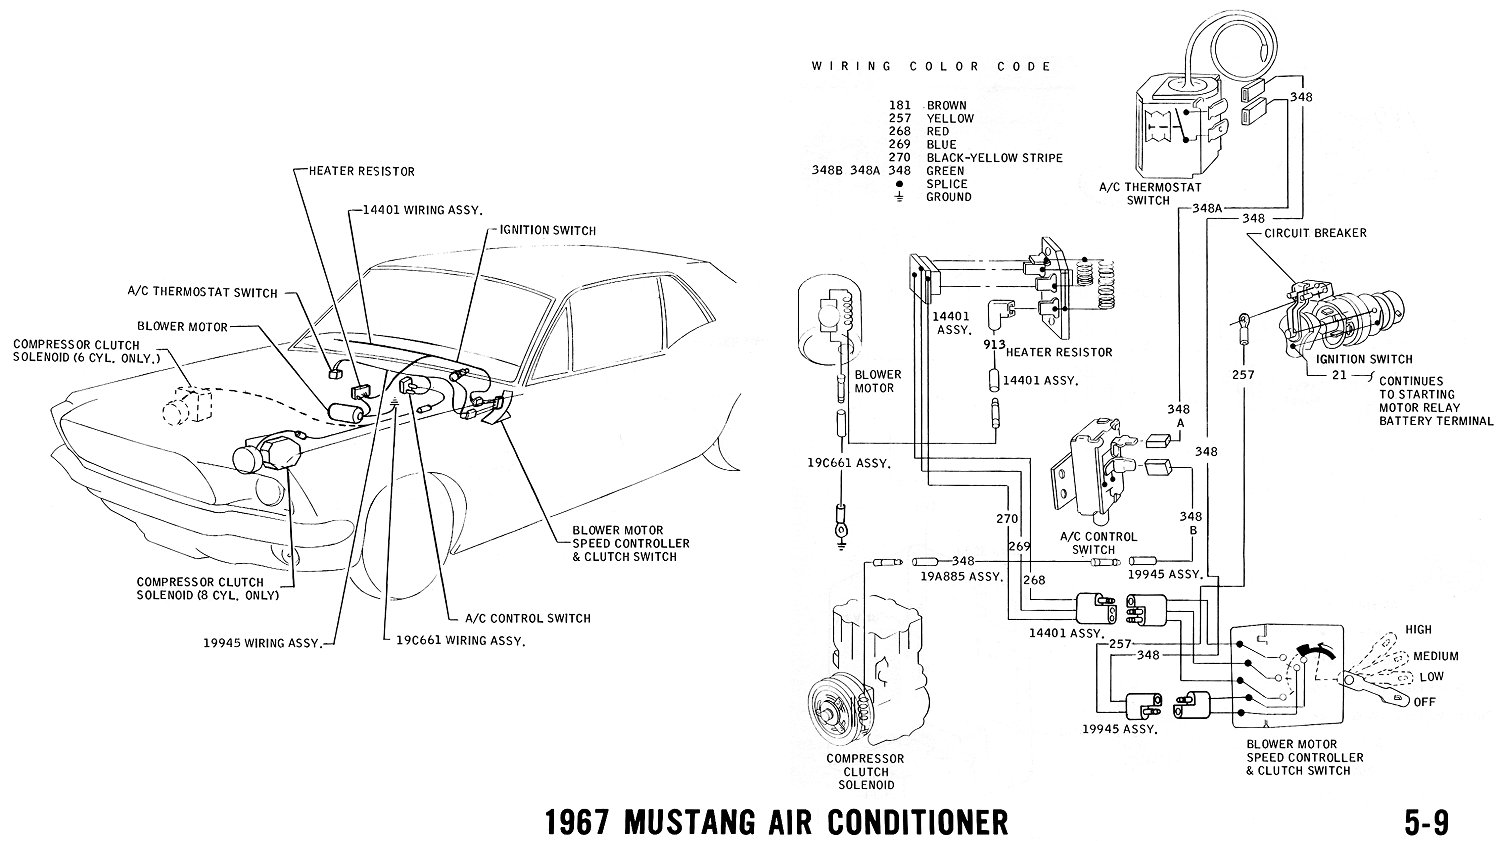 1967 Mustang Wiring And Vacuum Diagrams on C4 Corvette Instrument Cluster